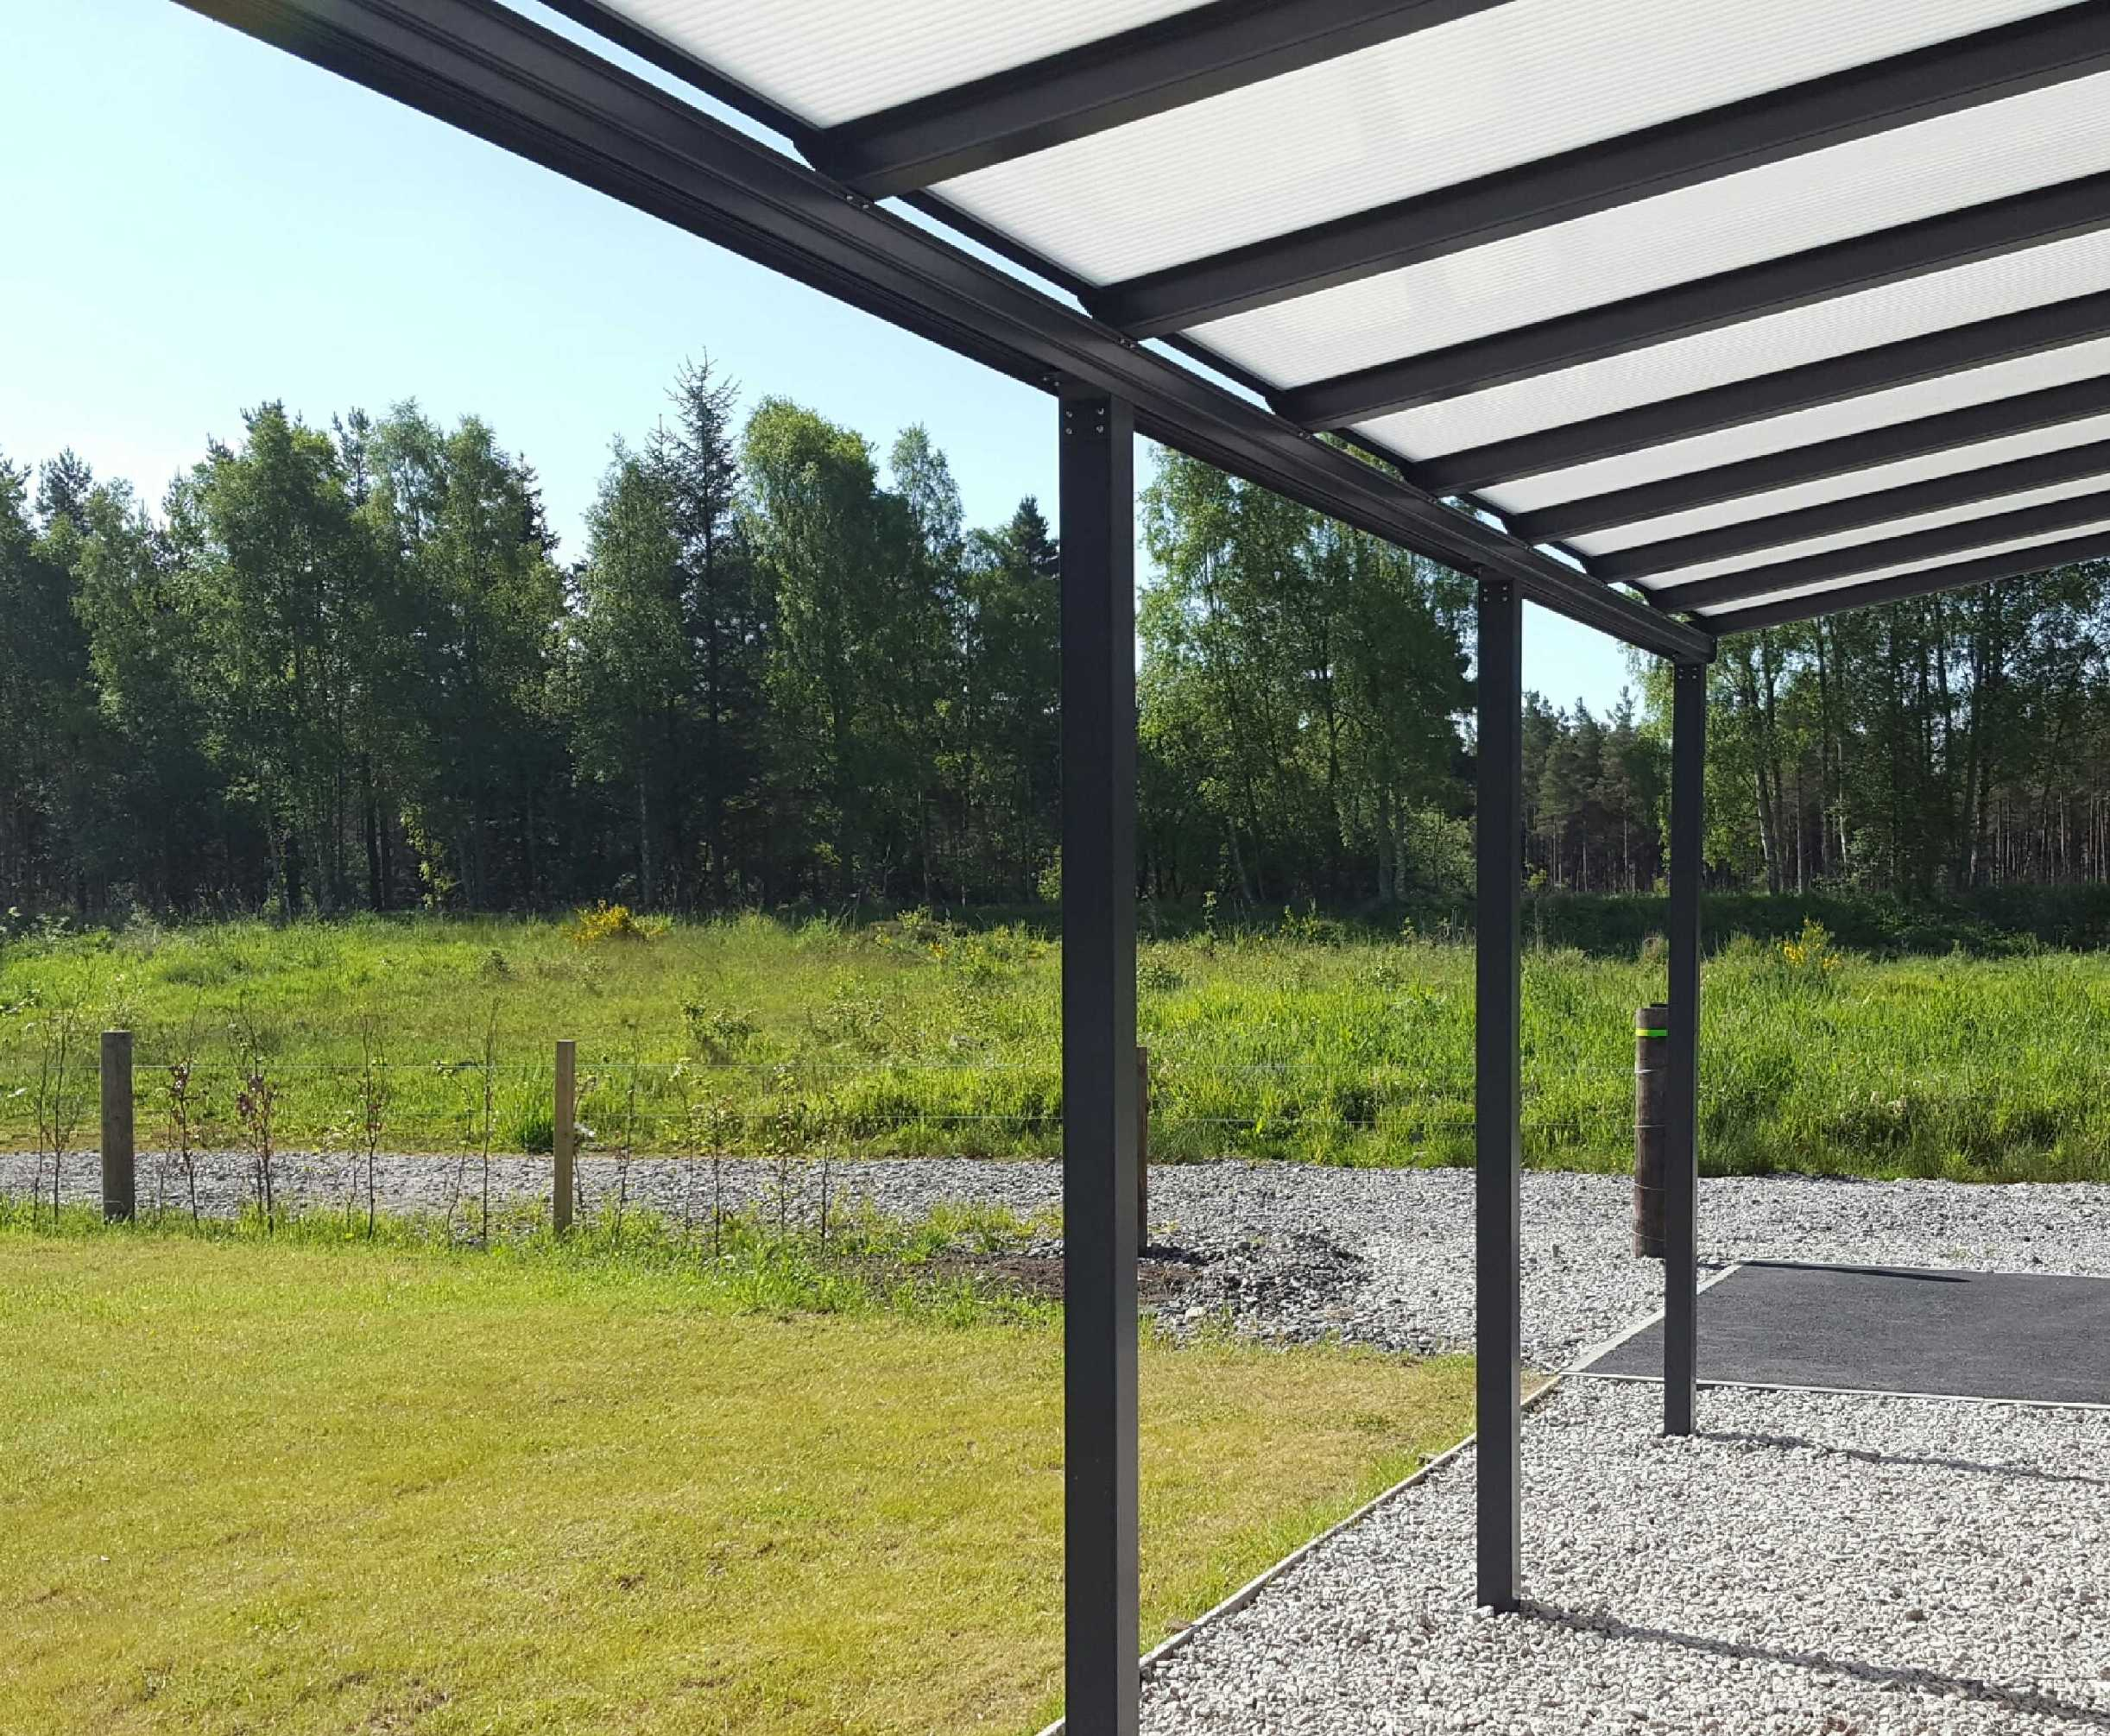 Omega Smart Lean-To Canopy, Anthracite Grey, 16mm Polycarbonate Glazing - 8.4m (W) x 4.0m (P), (4) Supporting Posts